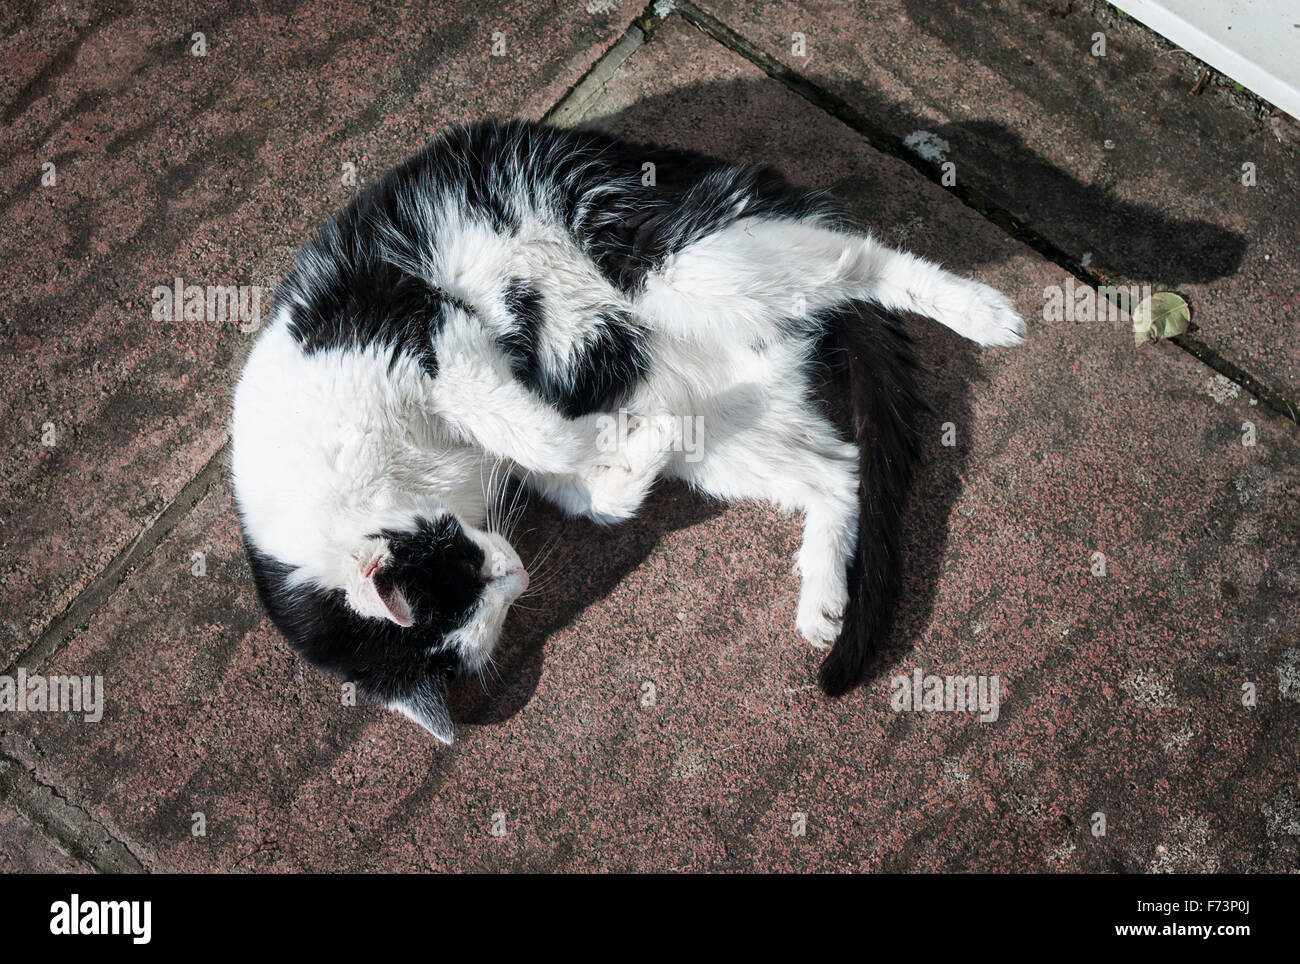 Black and white cat asleep on patio slabs in sunshine - Stock Image